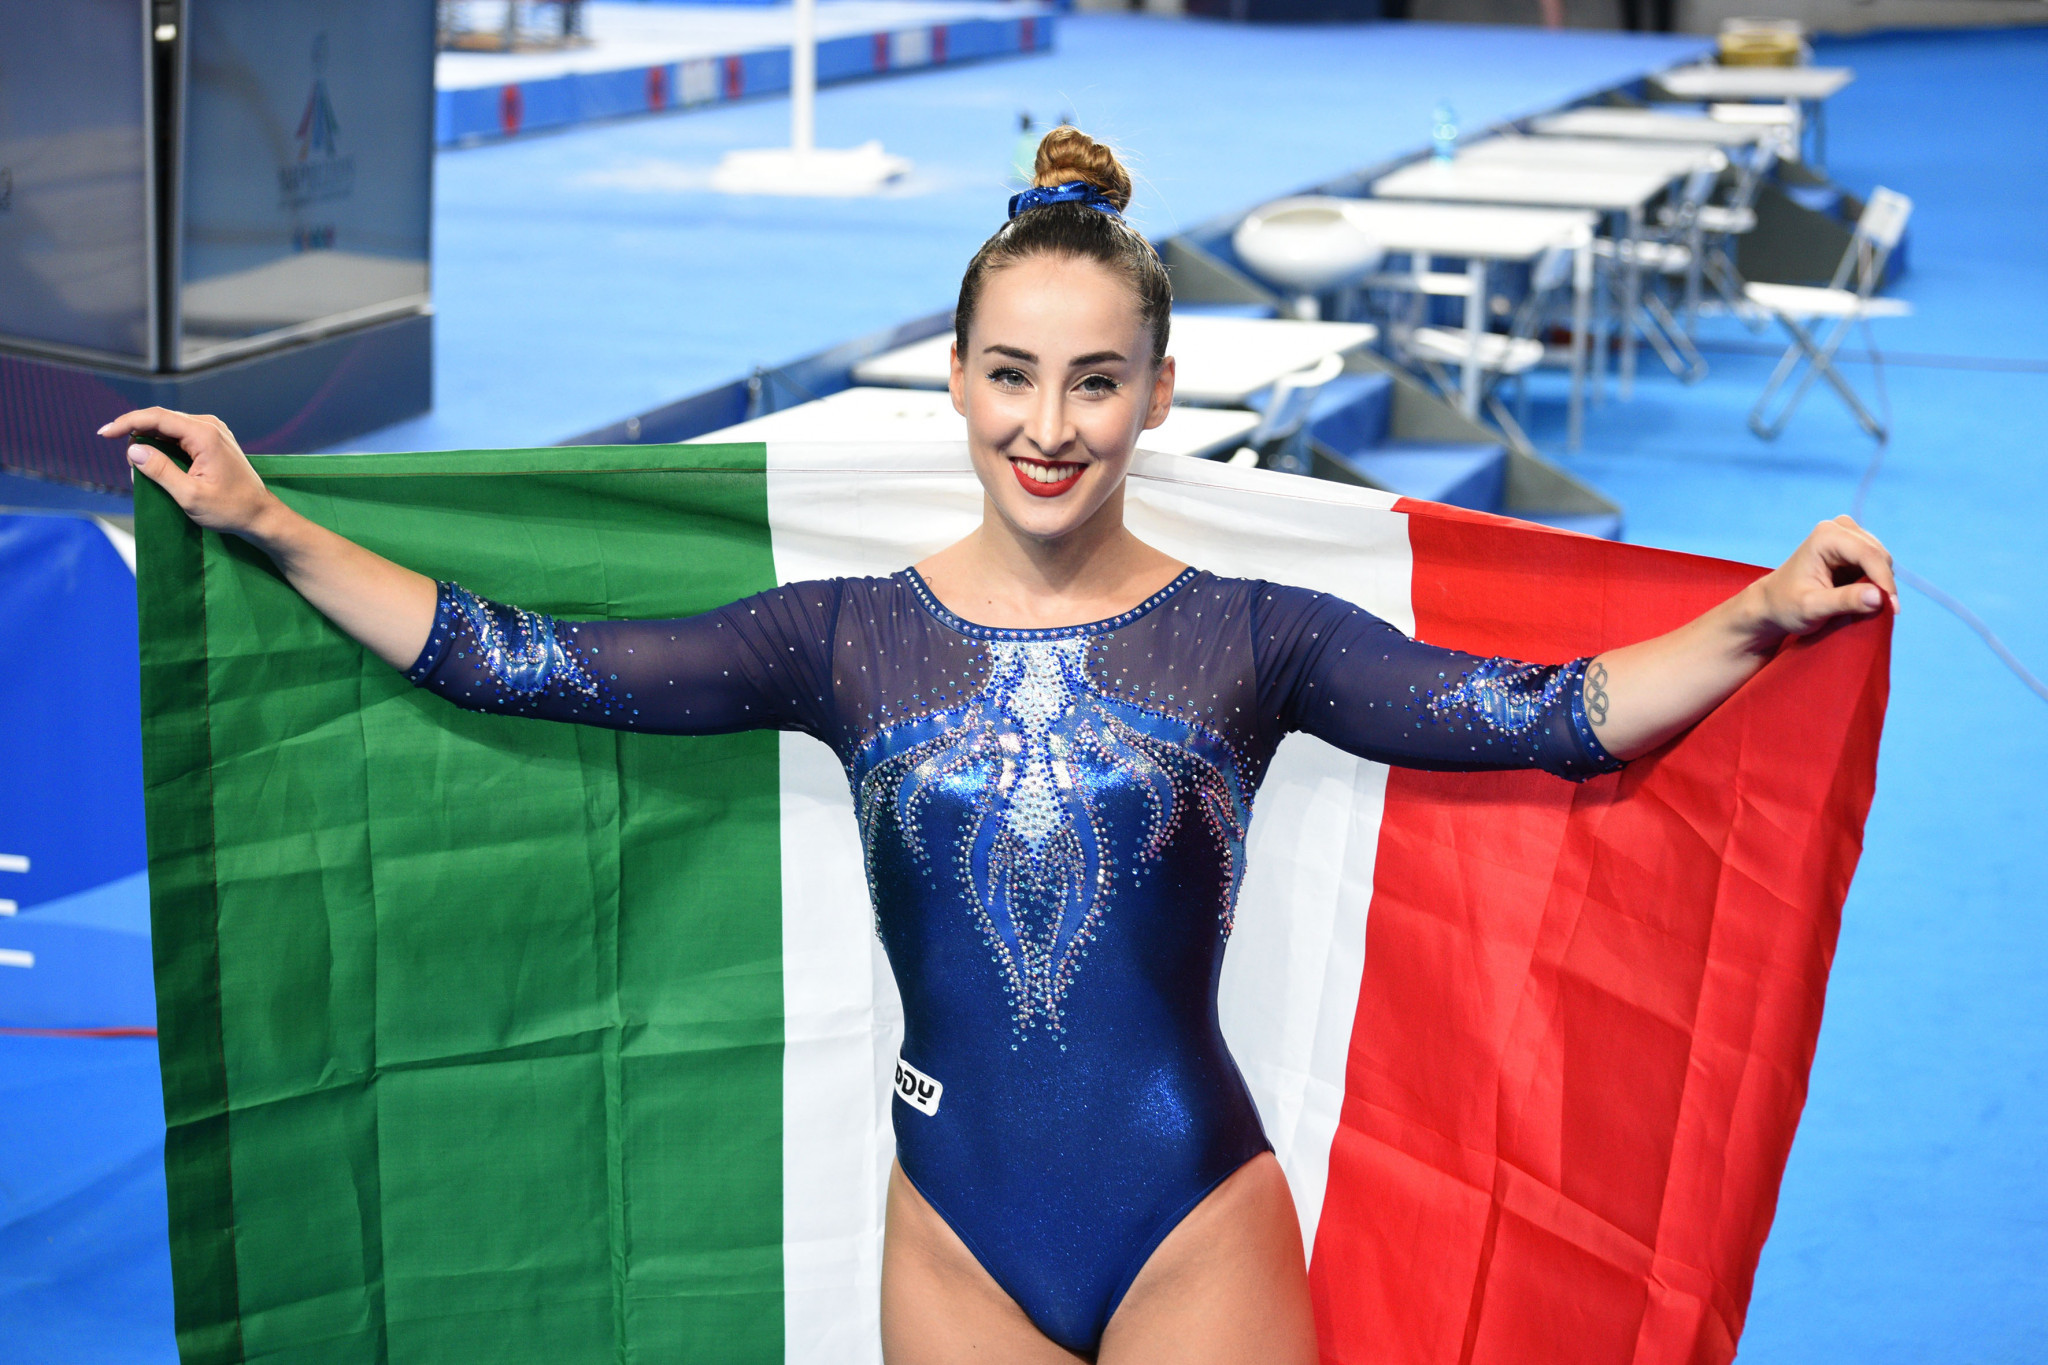 Ferlito lauded by home crowd after flooring rivals for Universiade gold